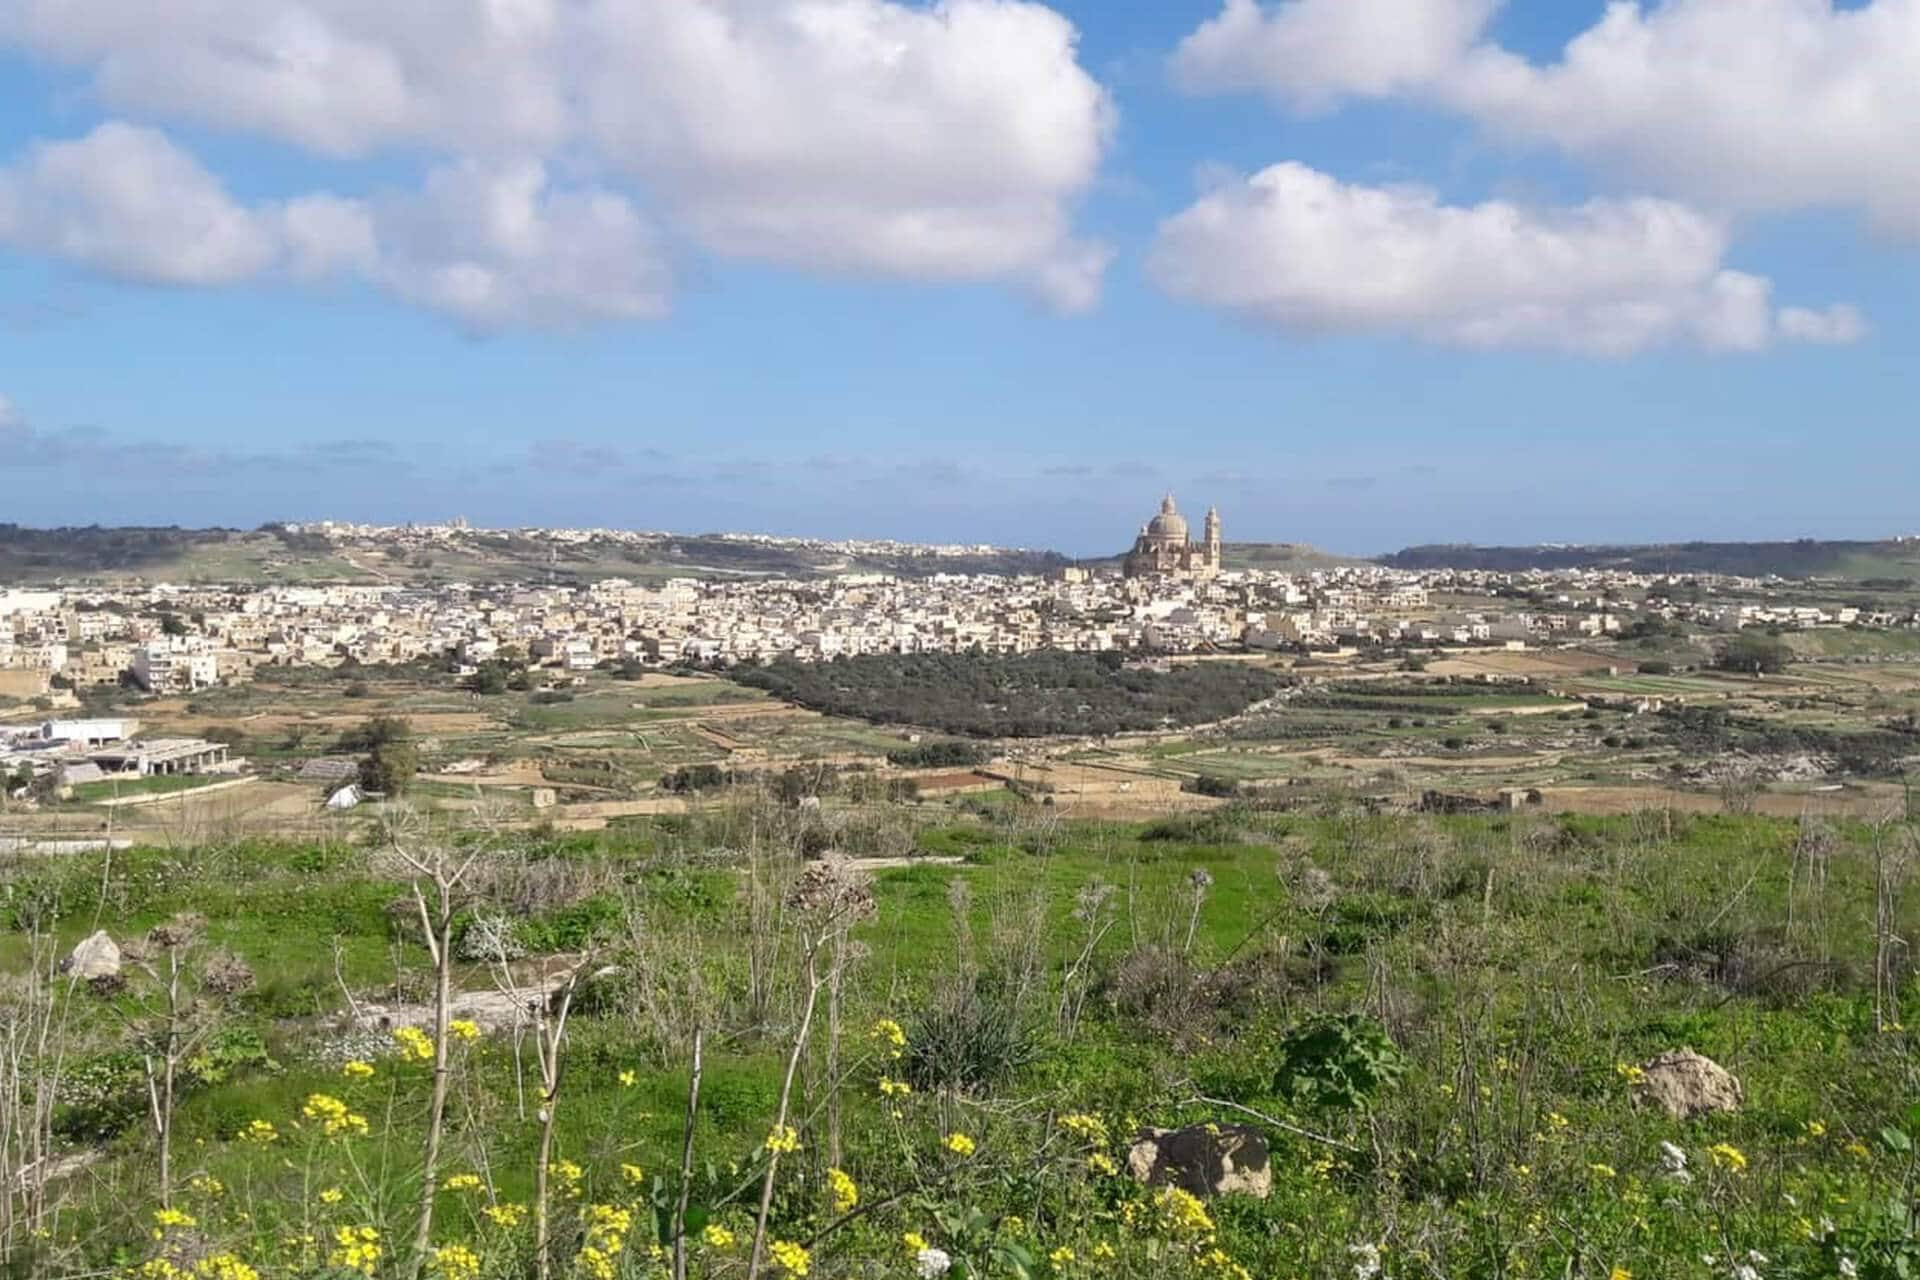 Vivre à Gozo : une alternative à Malte